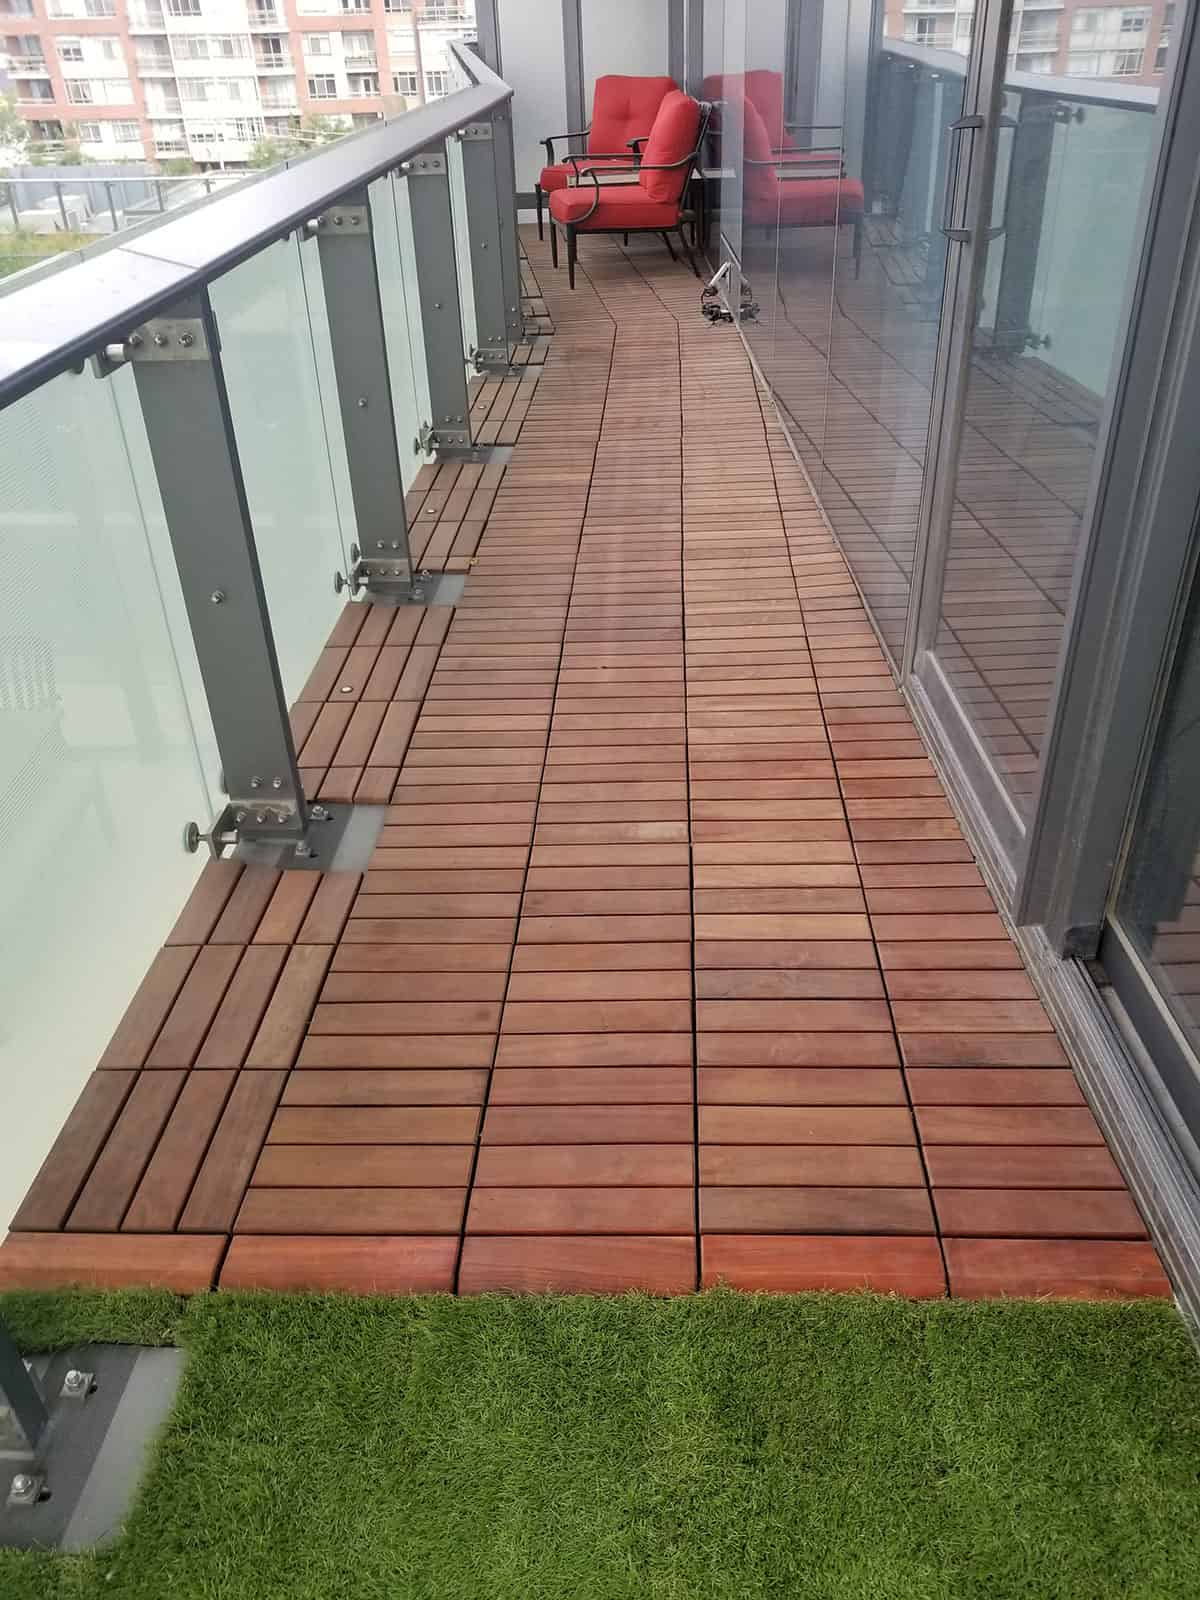 TURF-1-by-1ft-tile-large-area-4-reducer-transition-from-curapay-tigerwood-decking-to-turf-tiles